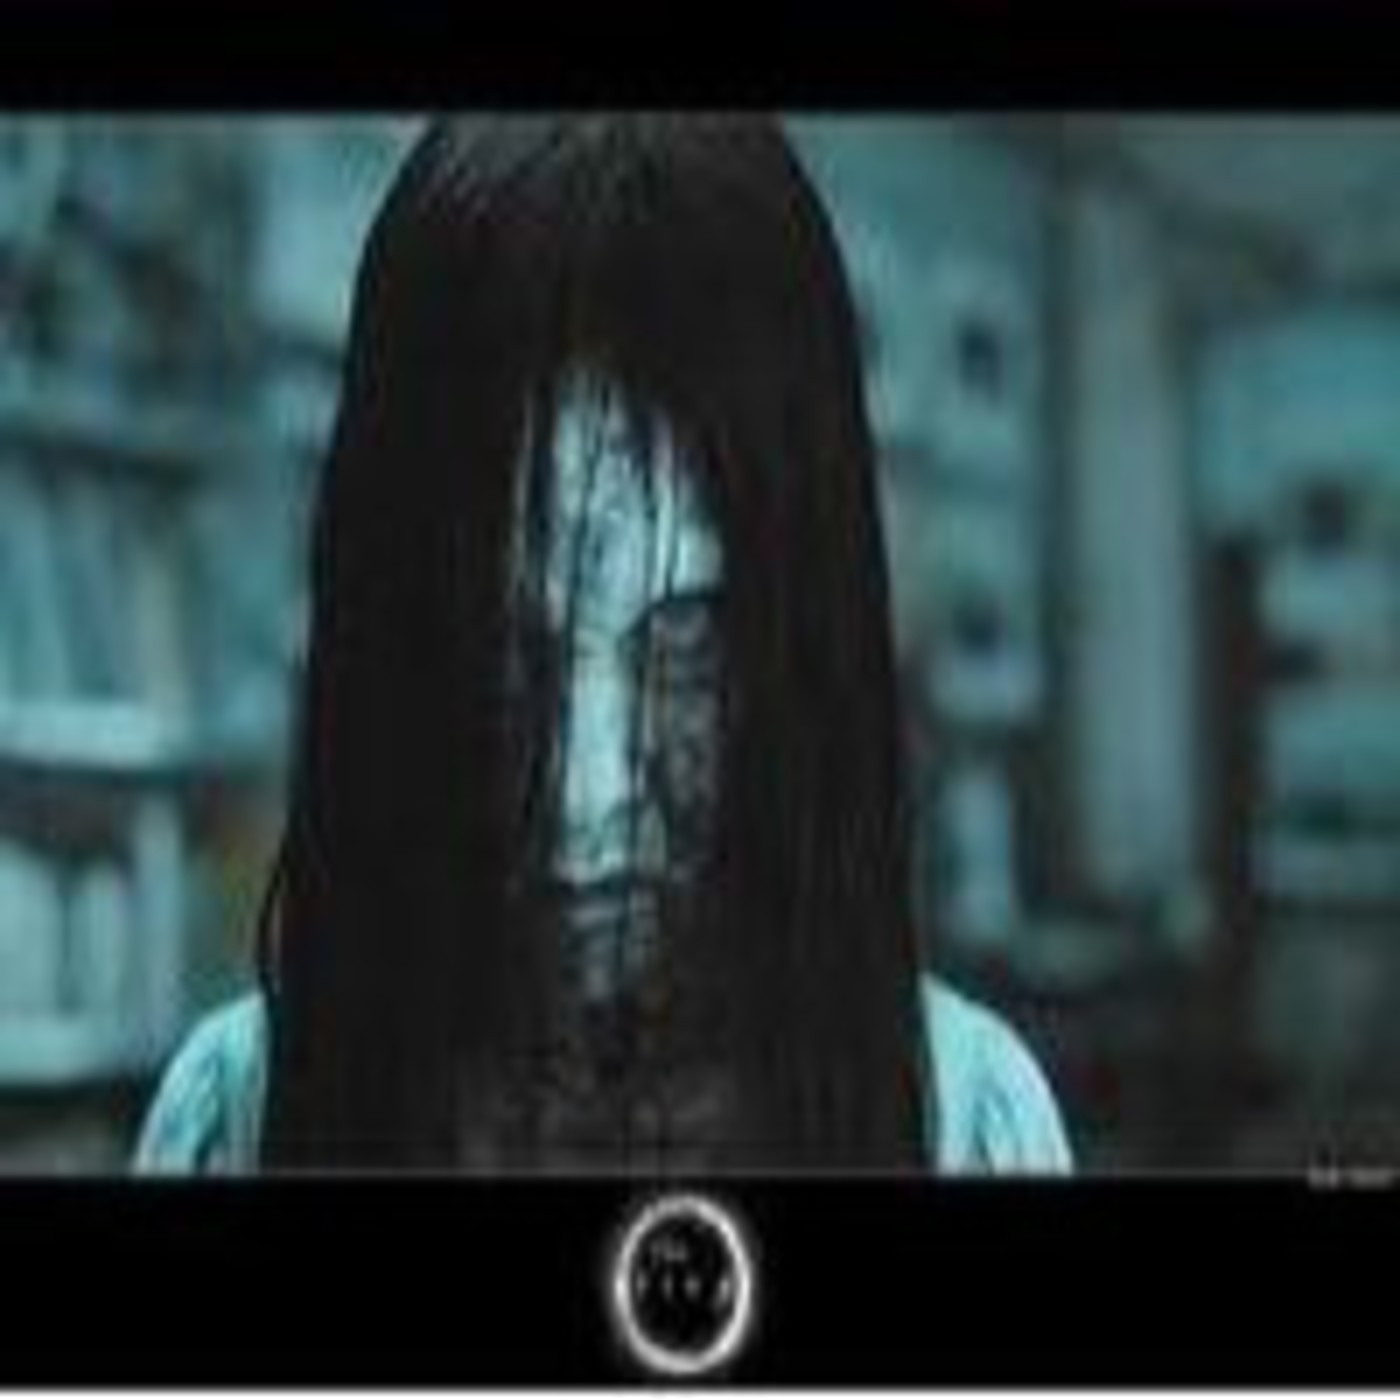 The ferry bso de the ring en musicas milenio 3 y cuarto for Cuarto de zanty ferry